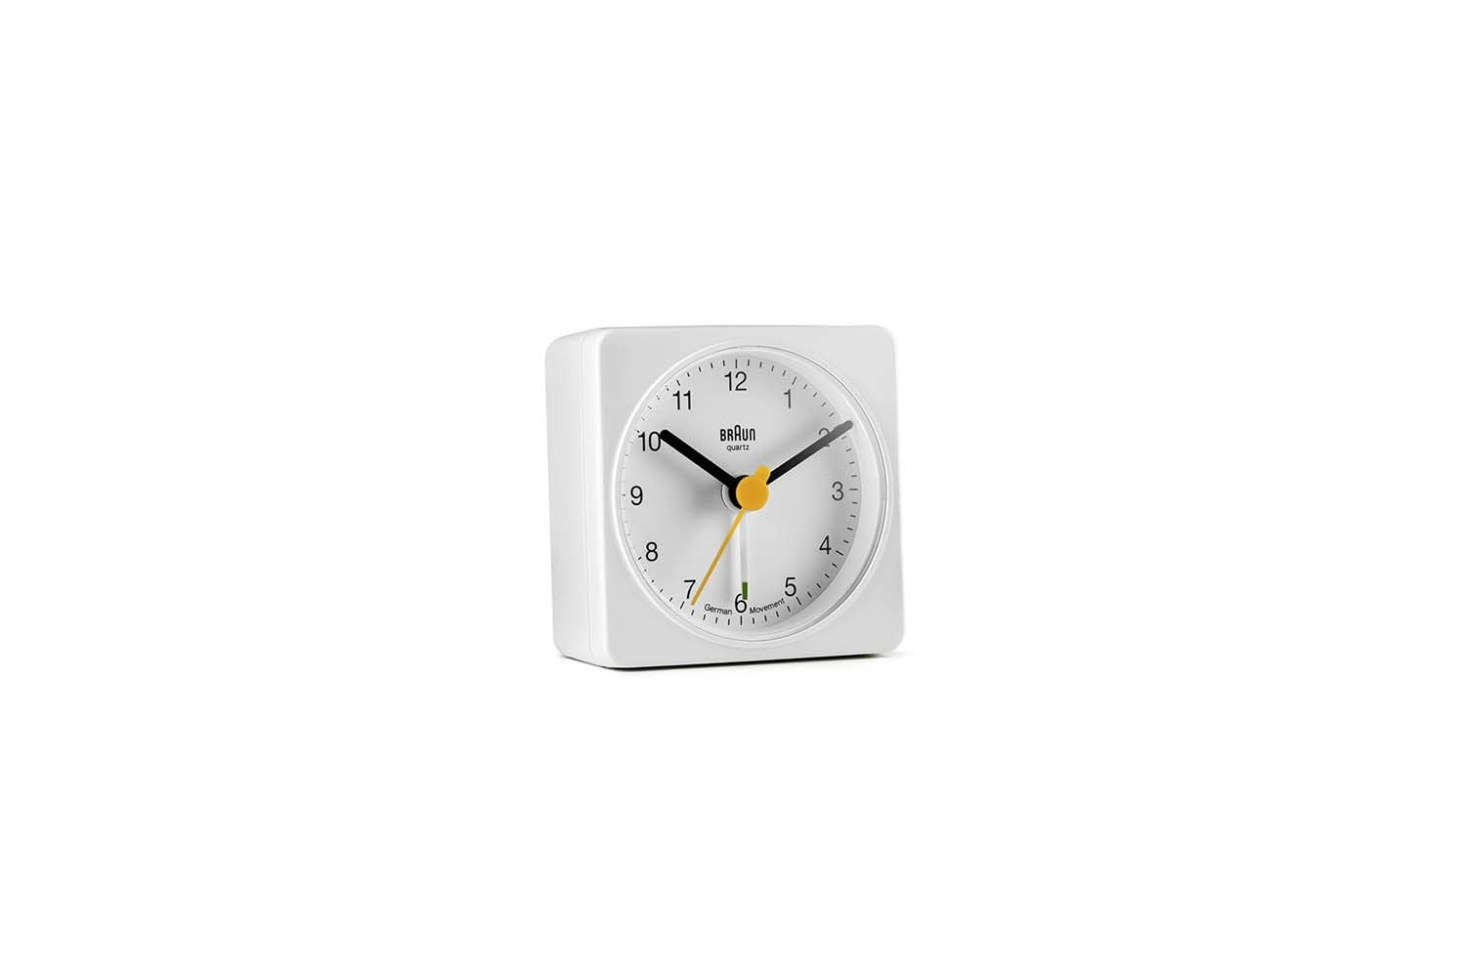 The Braun Classic Analog Quartz Alarm Clock (BNC00